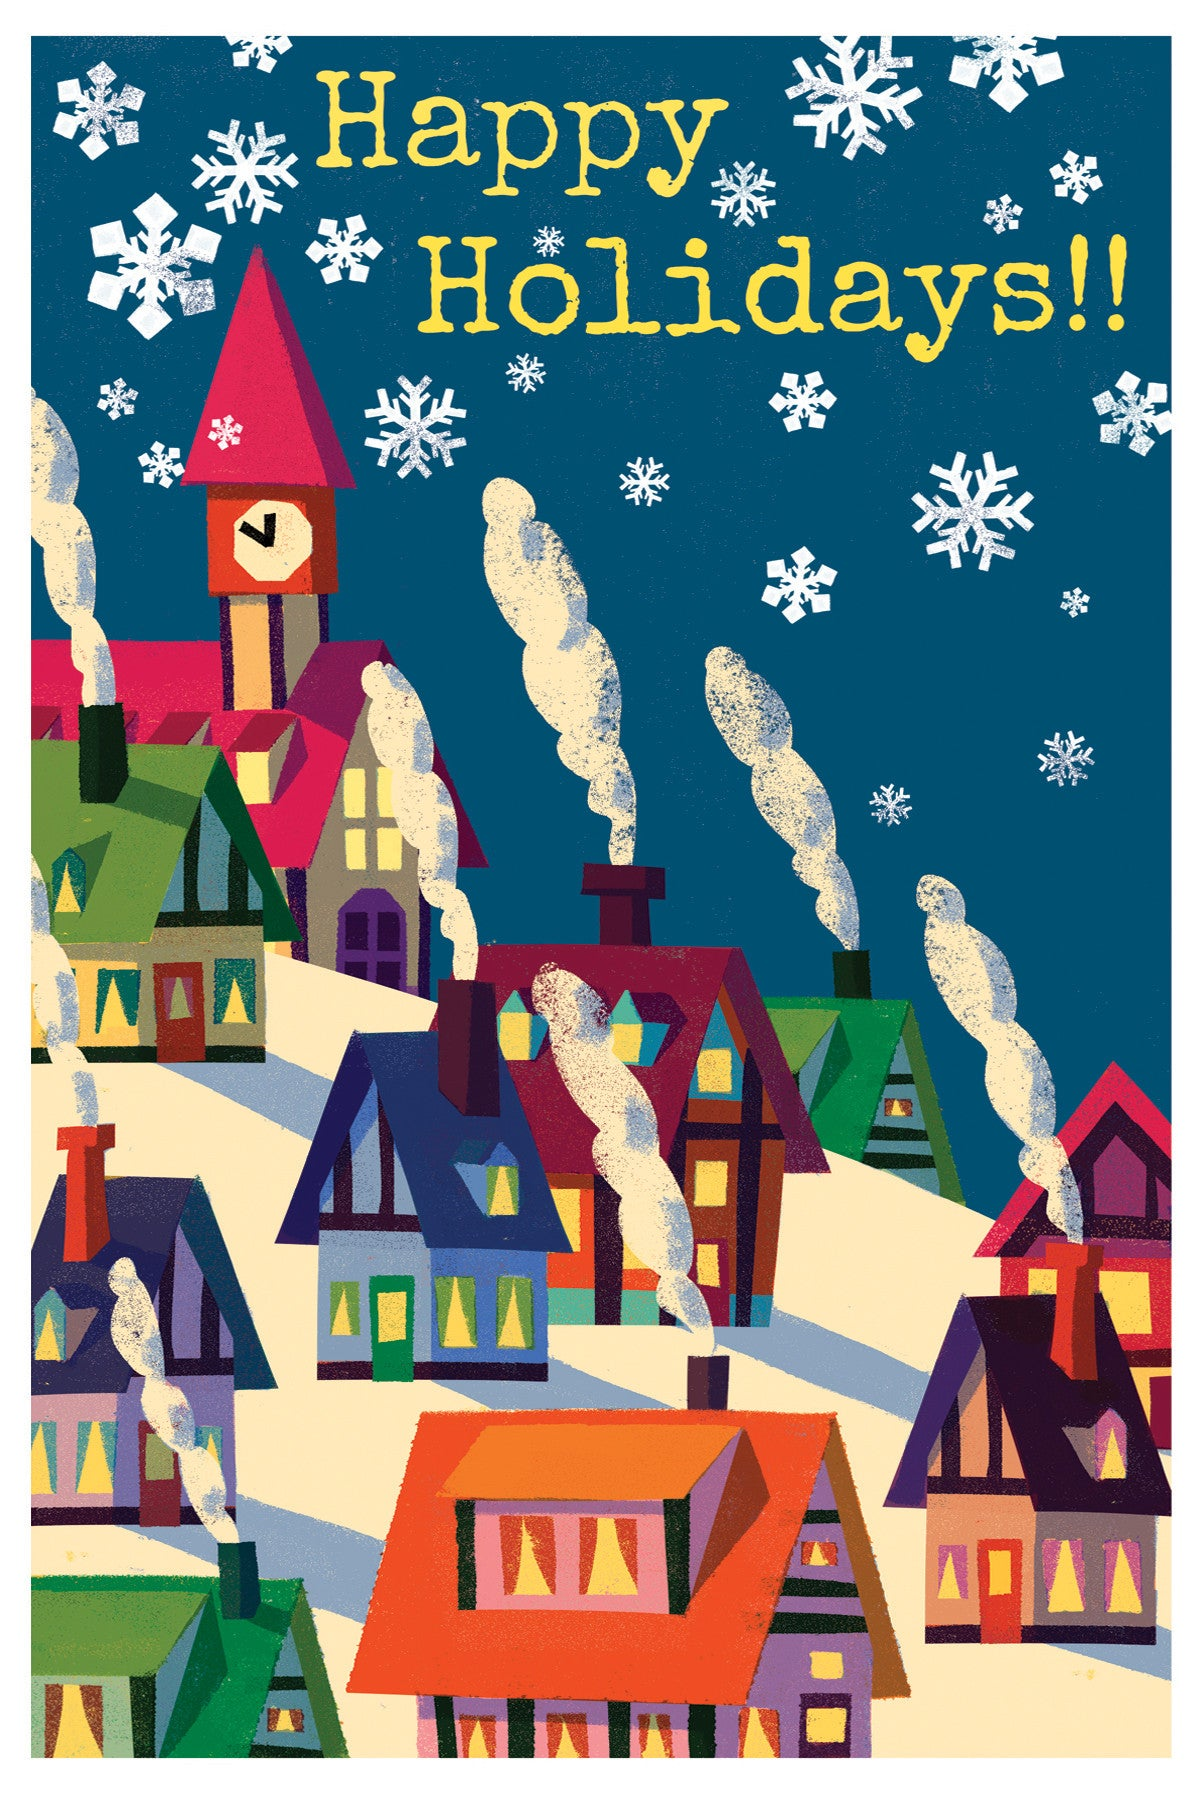 Christmas Village Card - Scratch N' Sniff